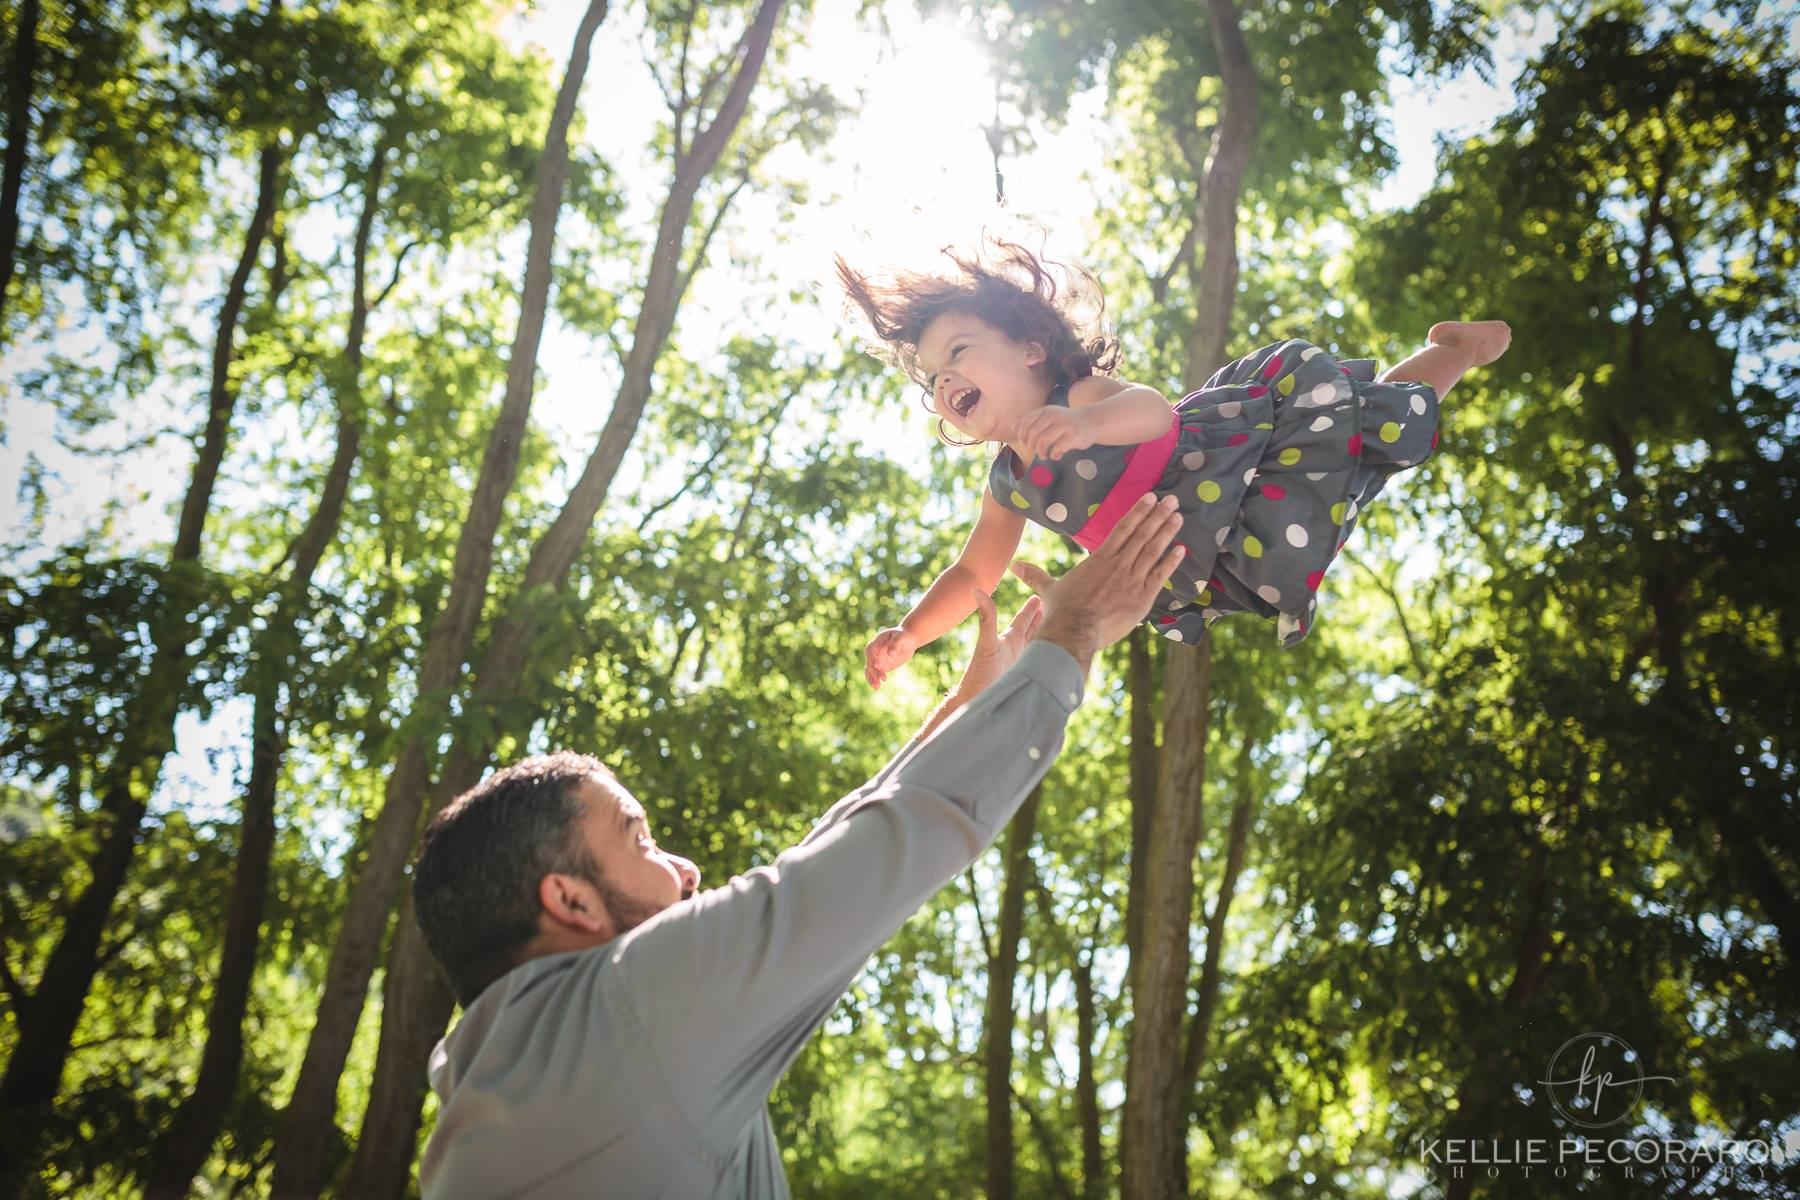 father and daughter toss family pose workshop kellie pecoraro photography